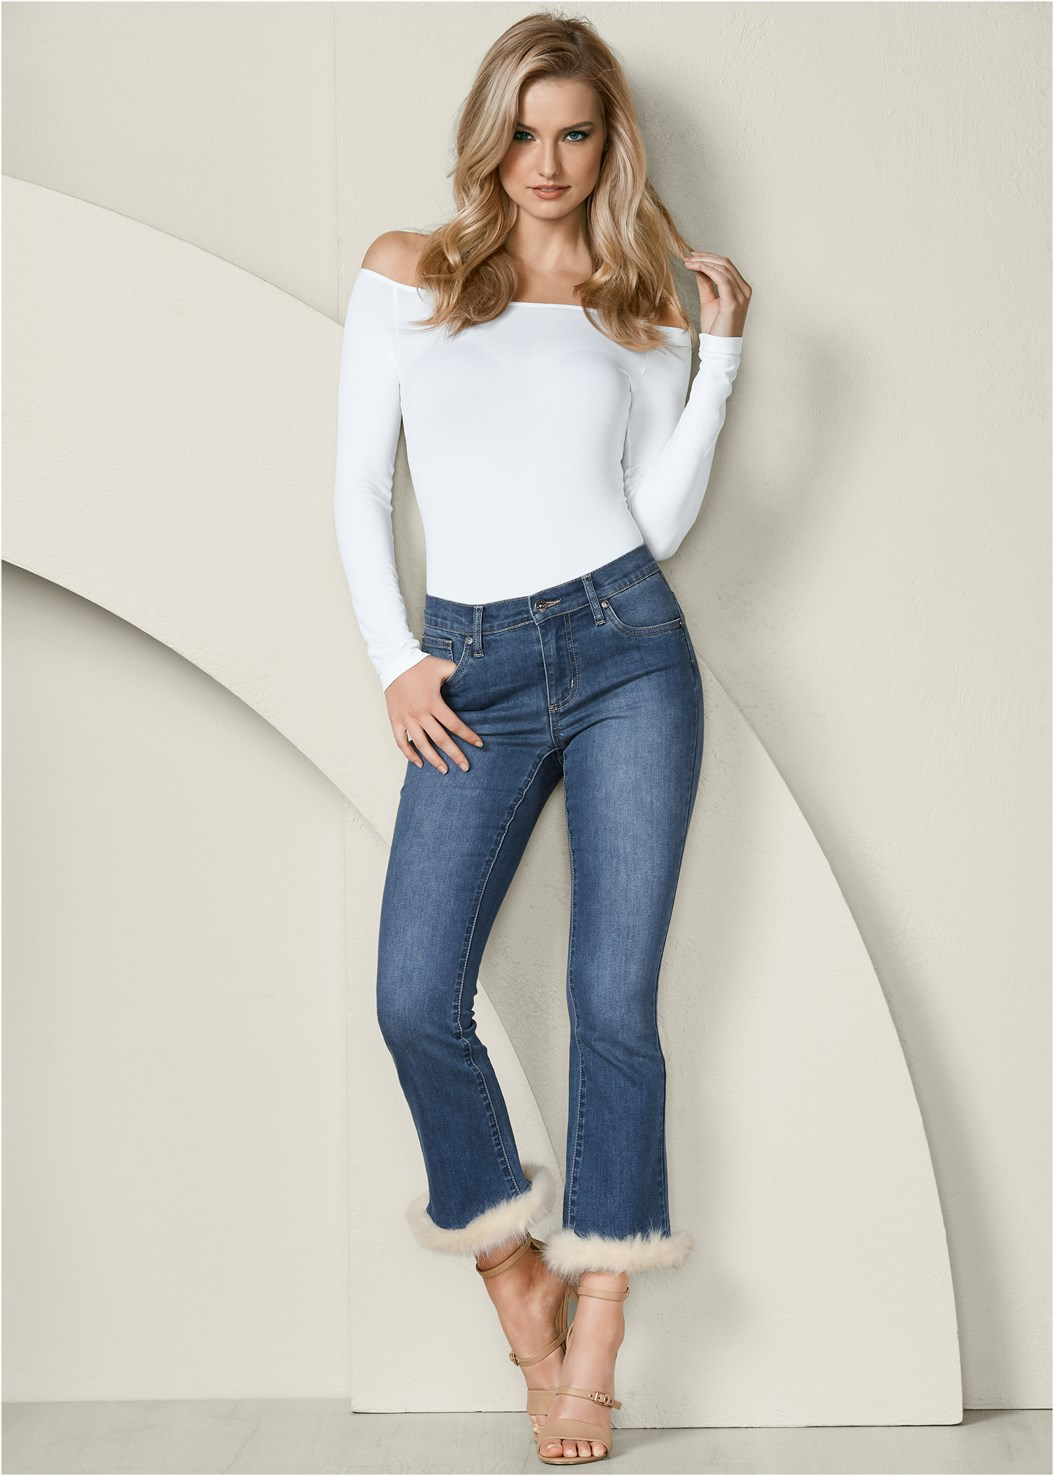 Faux Fur Cuff Jeans,Off The Shoulder Top,Buckle Detail Strappy Heels